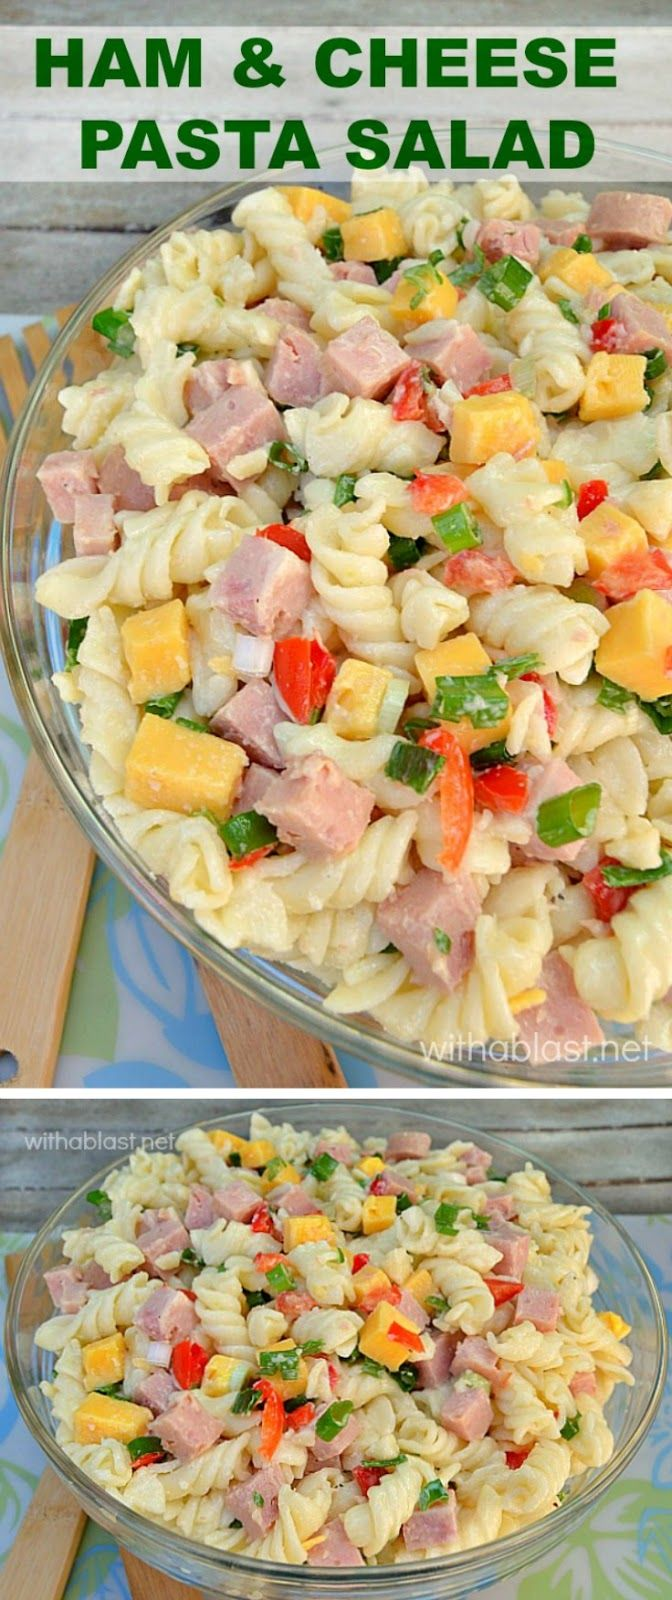 A simple, yet popular, delicious Ham and Cheese Pasta Salad with just enough dressing to make it tasty enough for seconds (or thirds!)